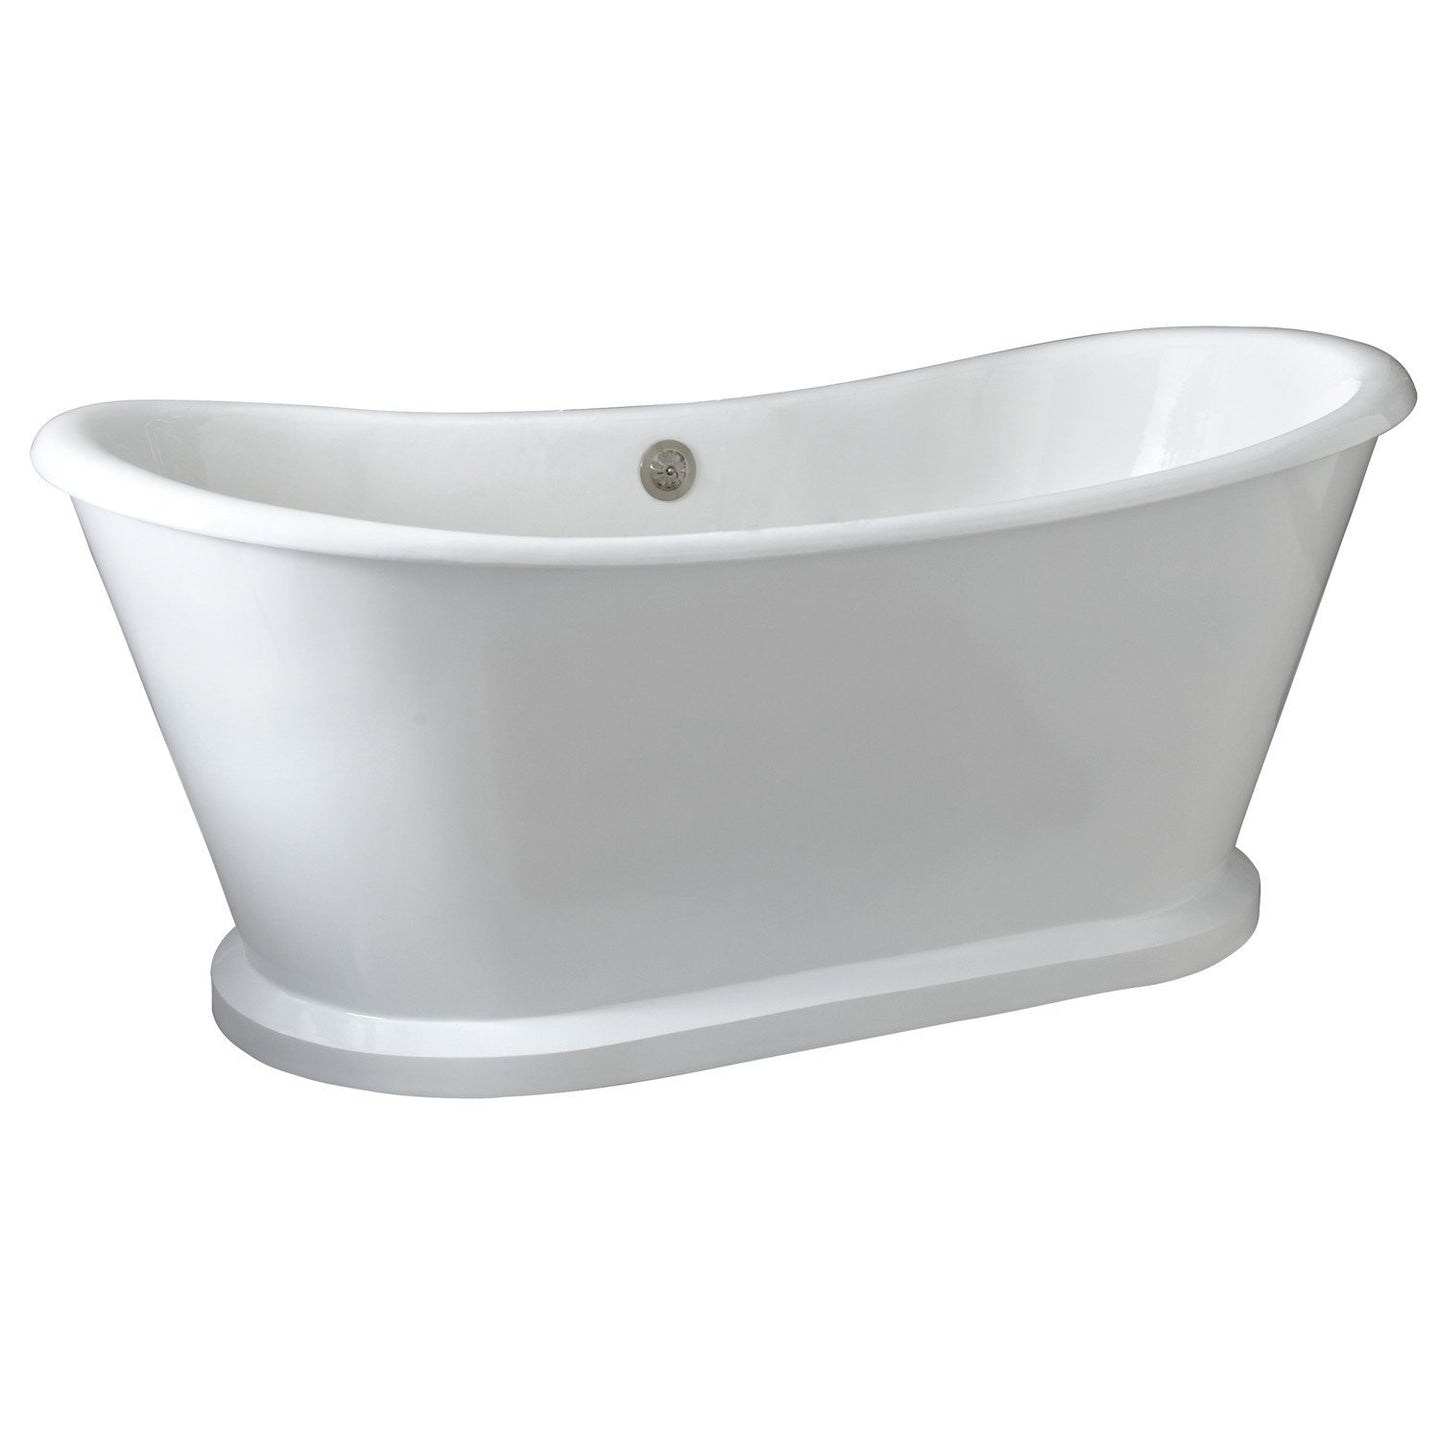 White Cast Iron Pedistal Bathtub - Barclay Raynor